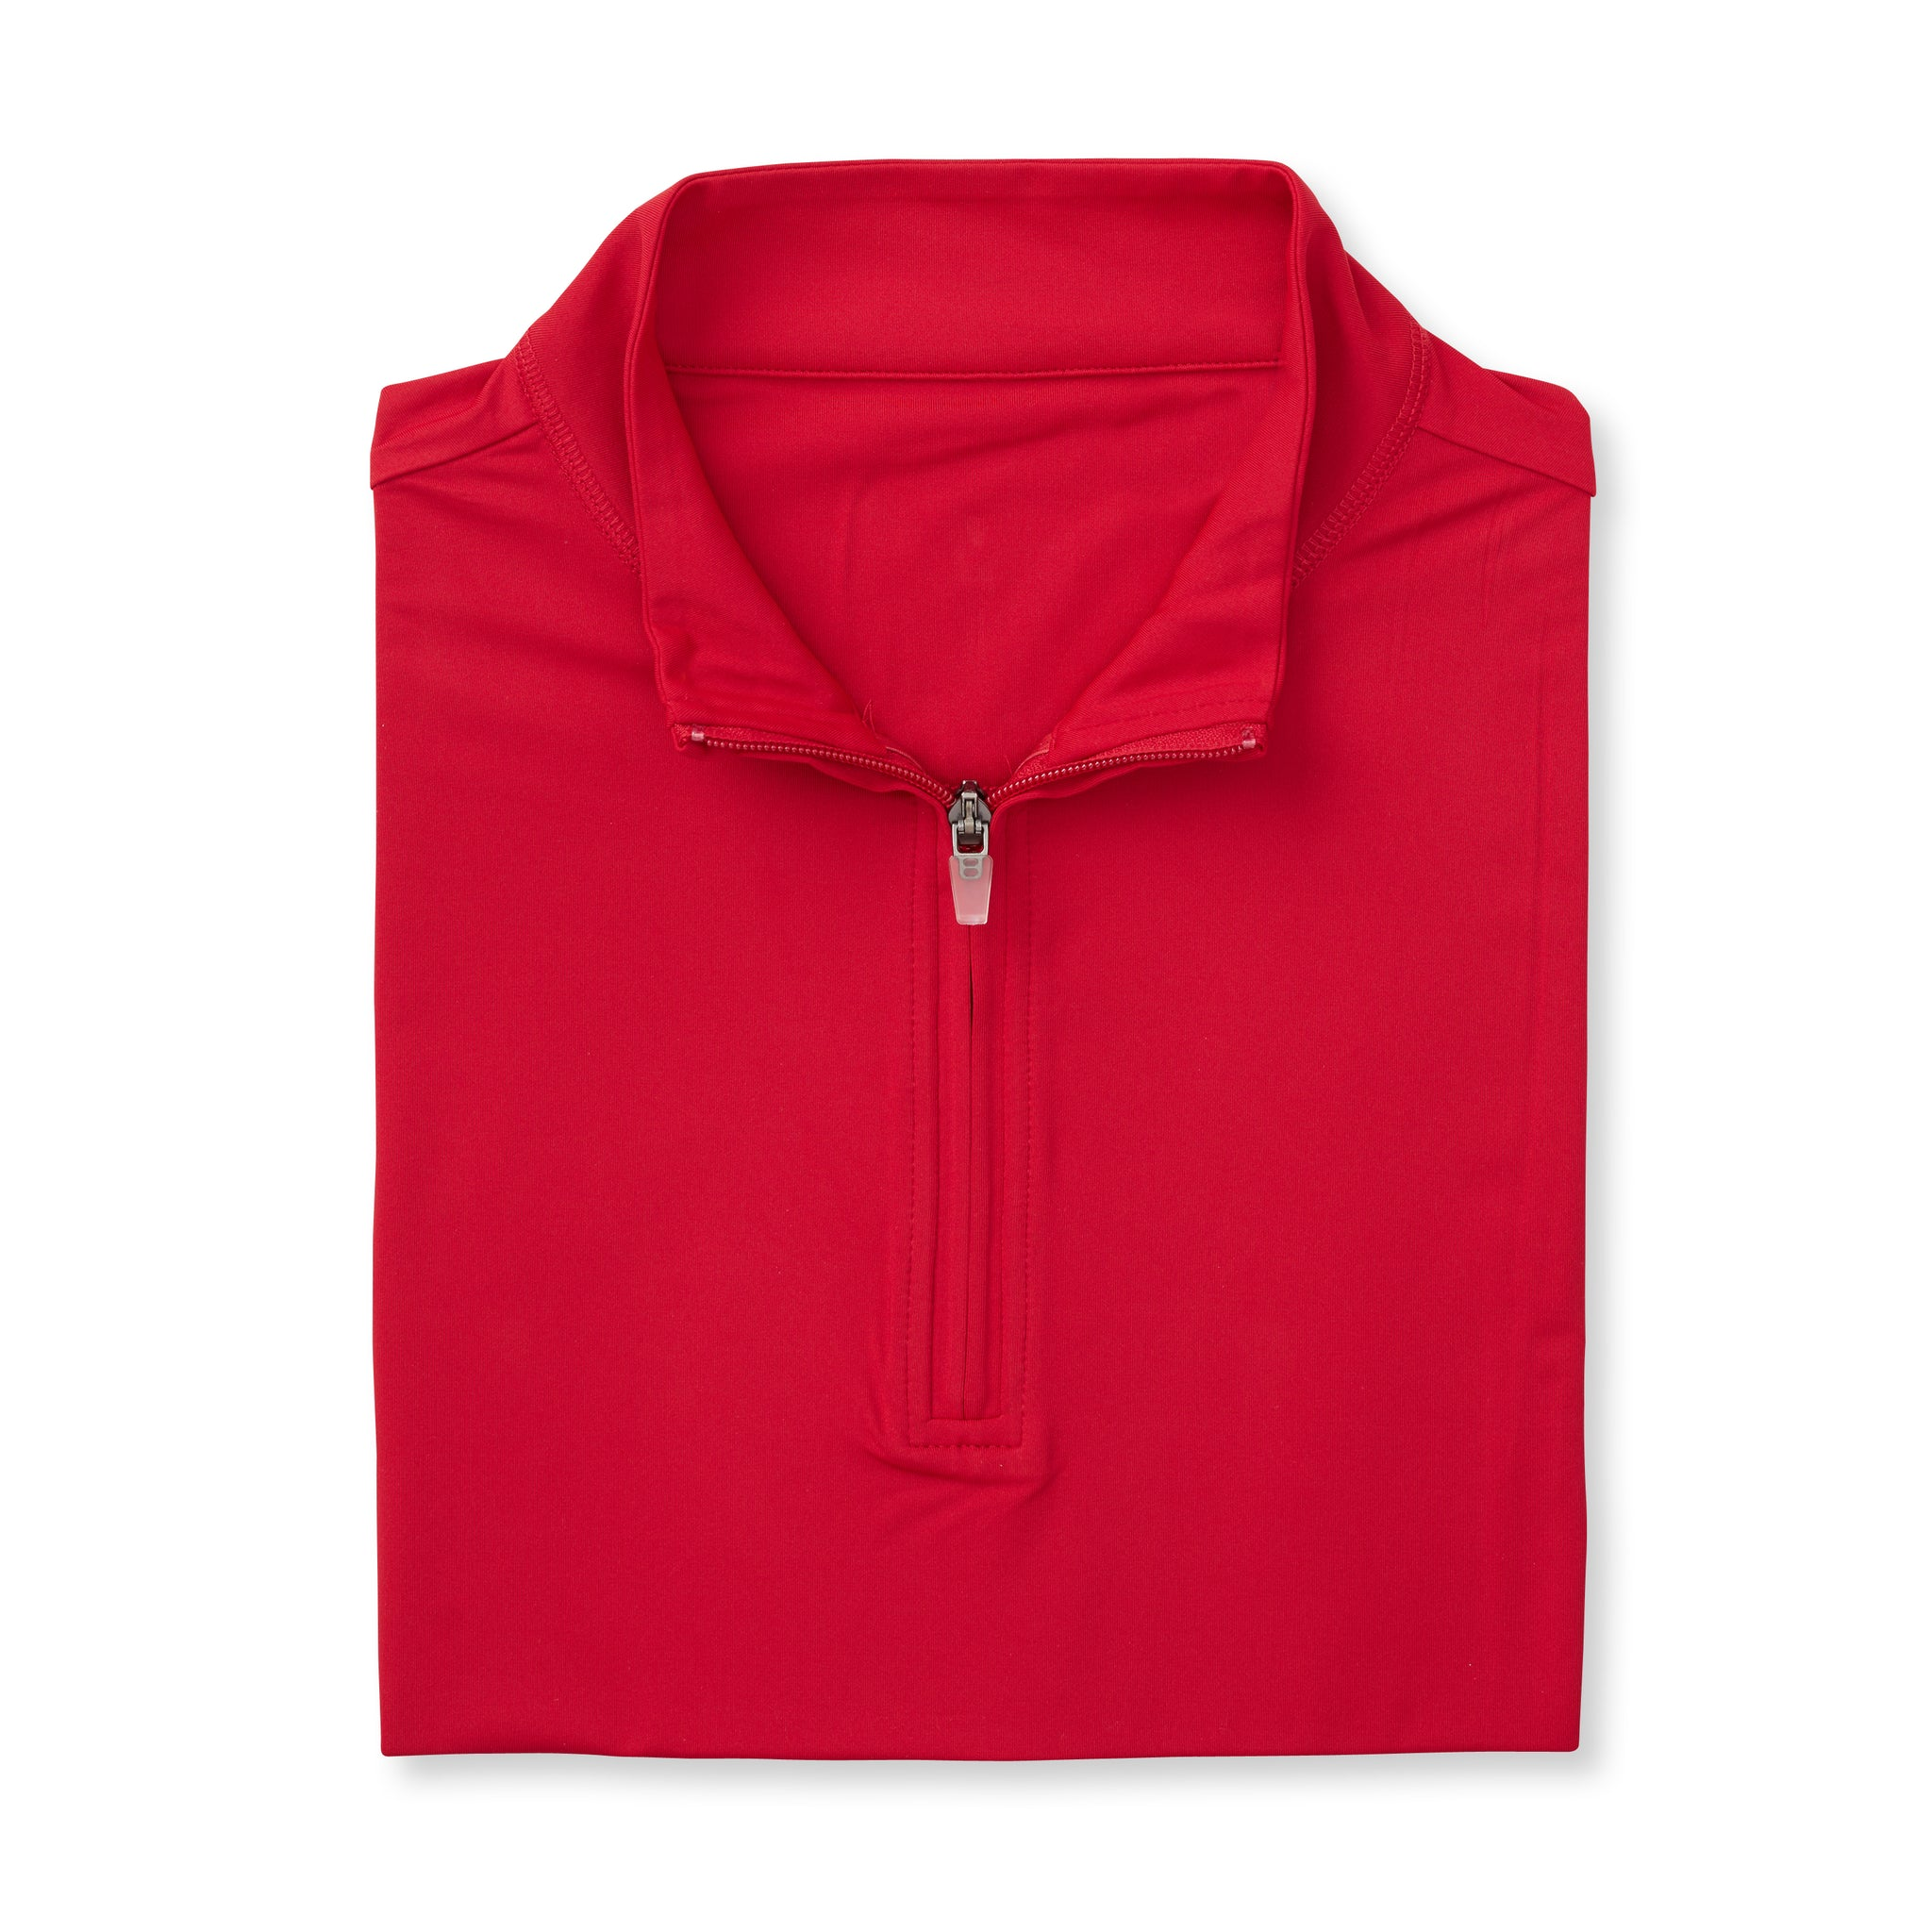 ECOTEC Half Zip Pullover - Crimson IS66006